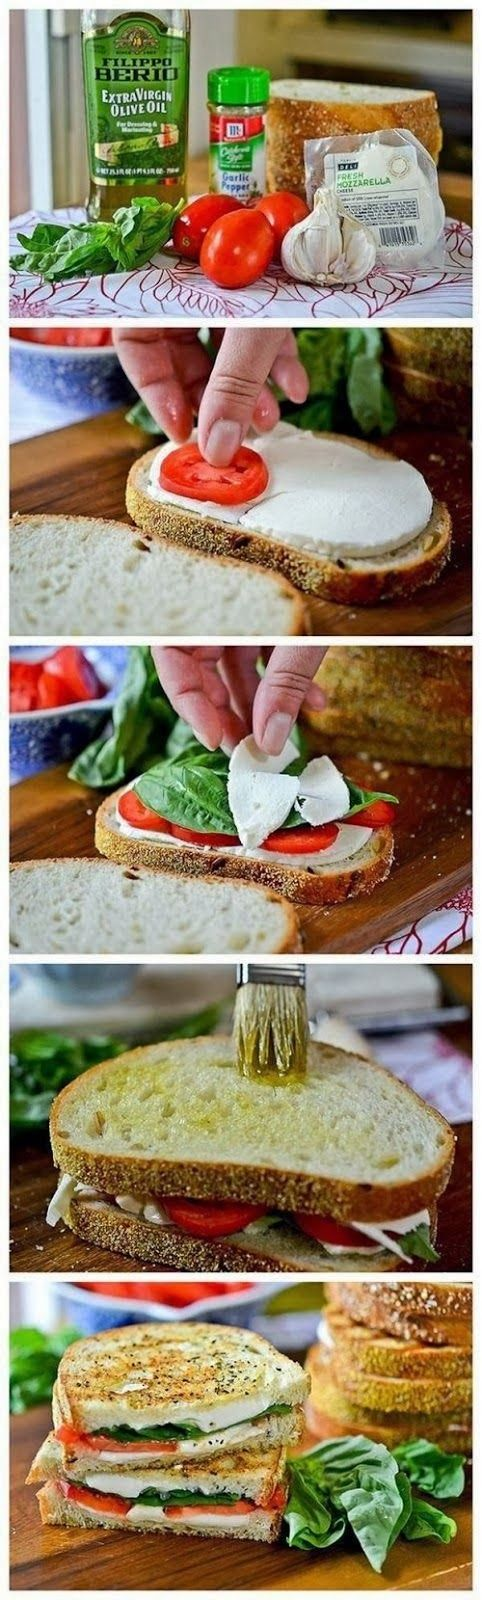 Grilled Margherita Sandwiches - These are so, so good and really simple sandwiches to make!